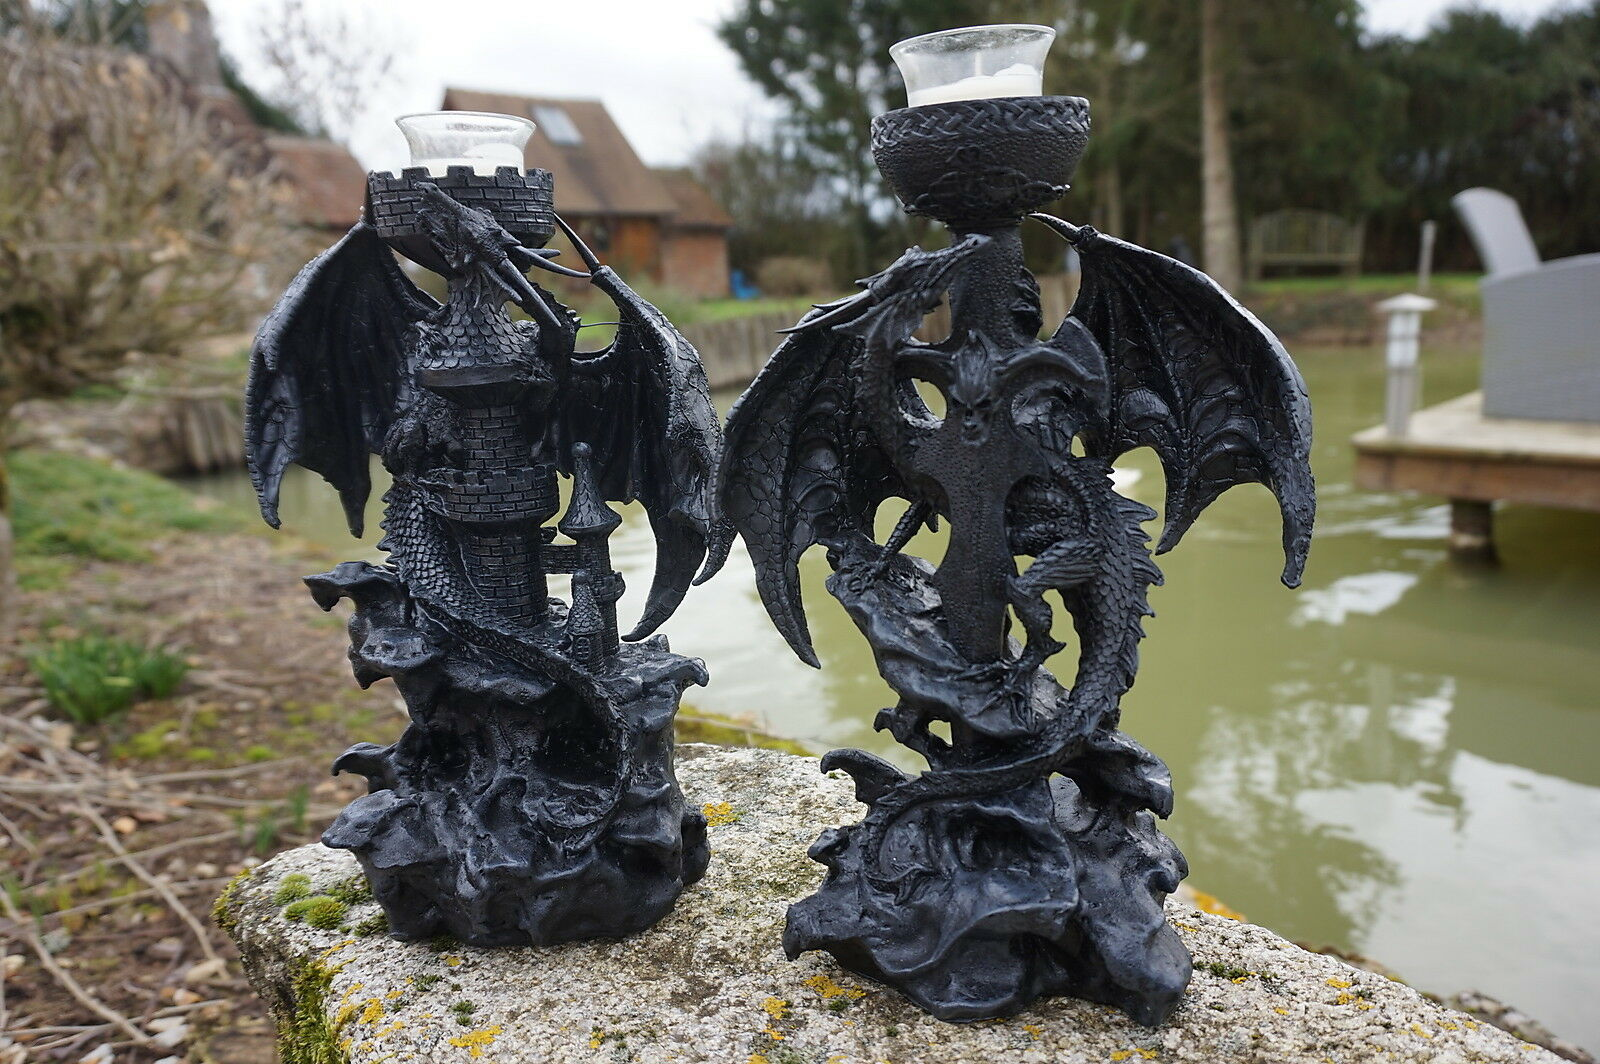 87022V   FIGURINE  RESINE DRAGON black BOUGEOIRS SET DE 2   HEROIC FANTASY 30 %